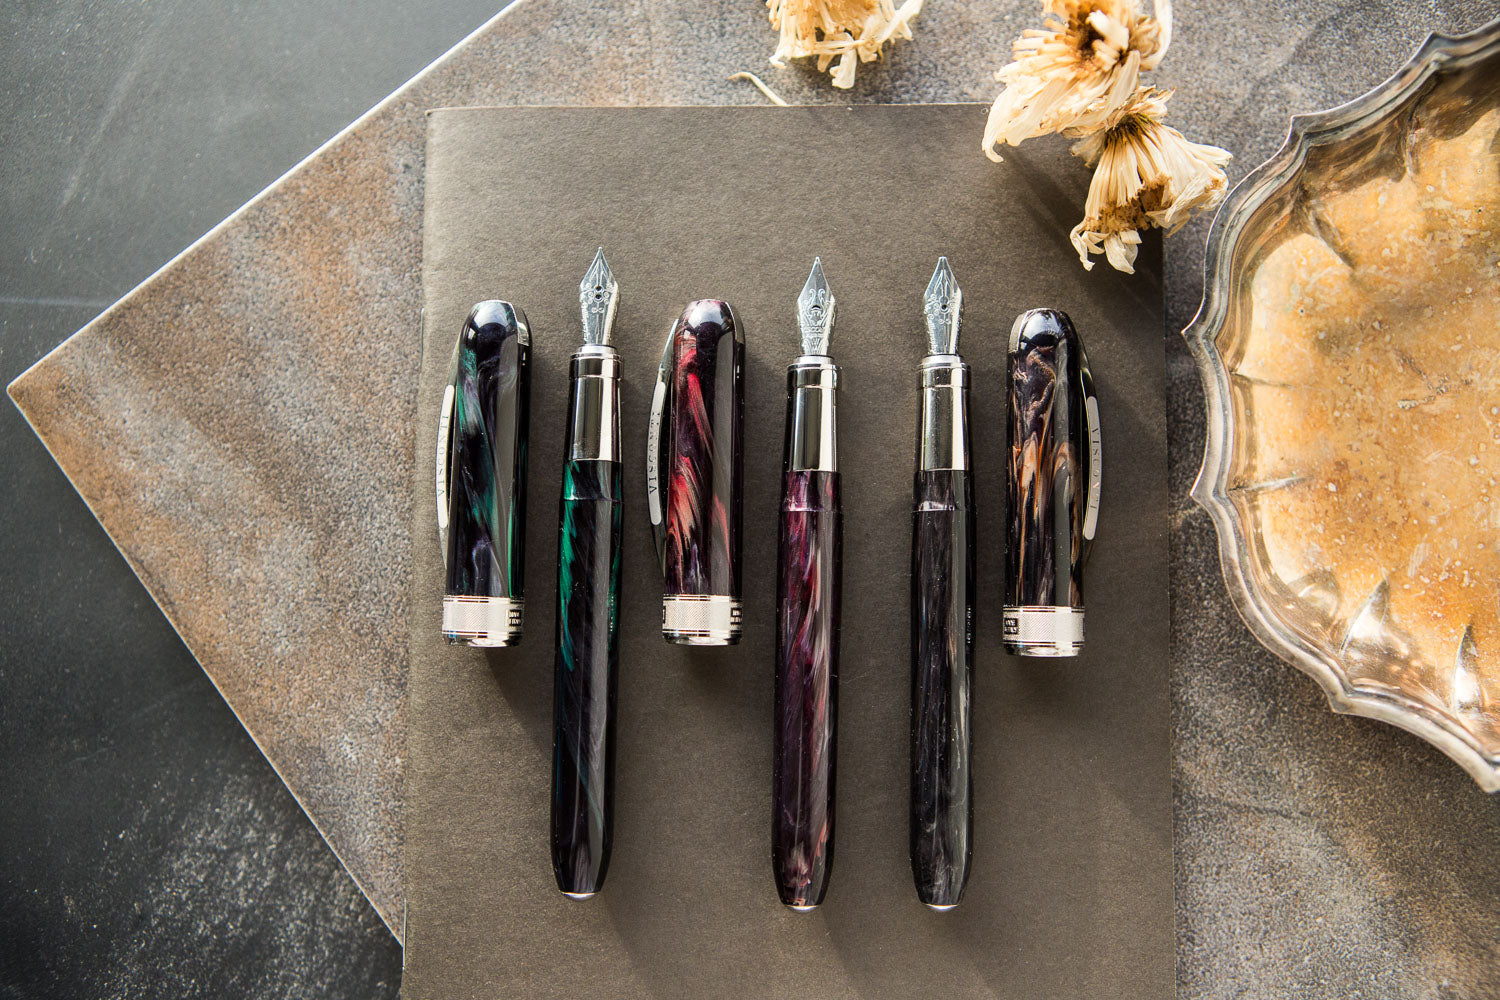 Fine Point Visconti Rembrandt Eclipse KP10-12-FP-F NEW Fountain Pen